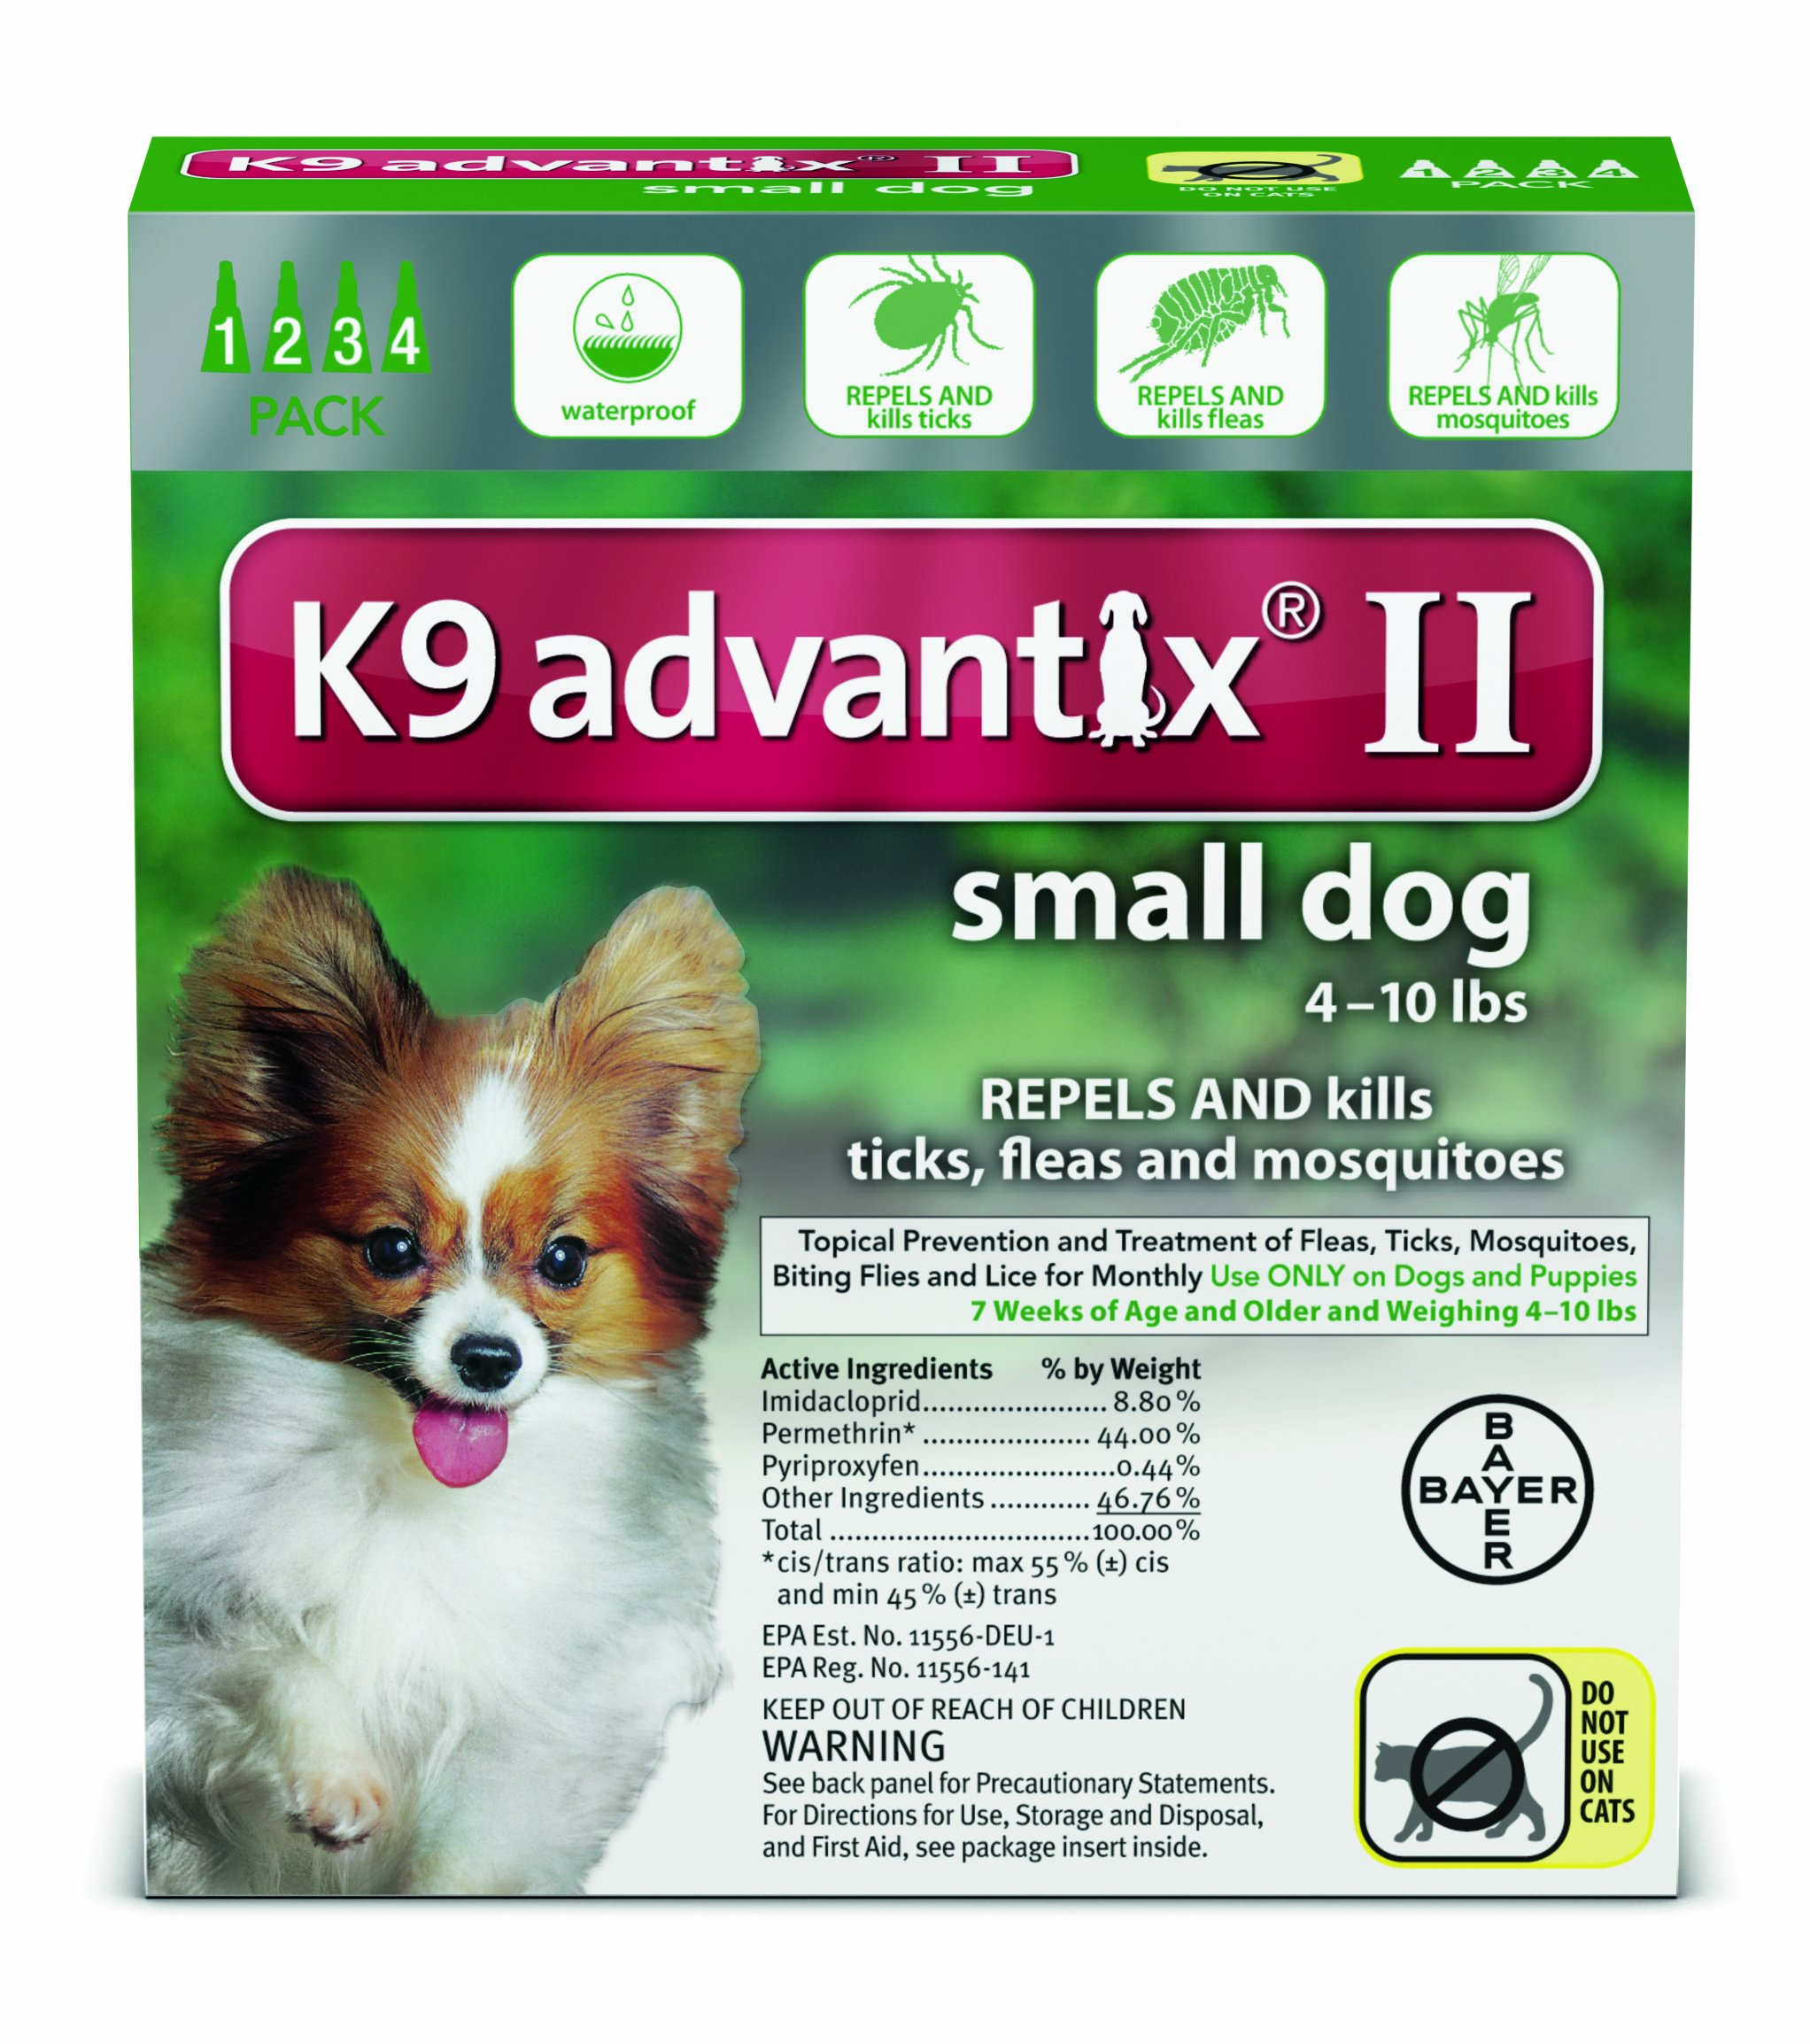 K9 Advantix Under 10 lbs